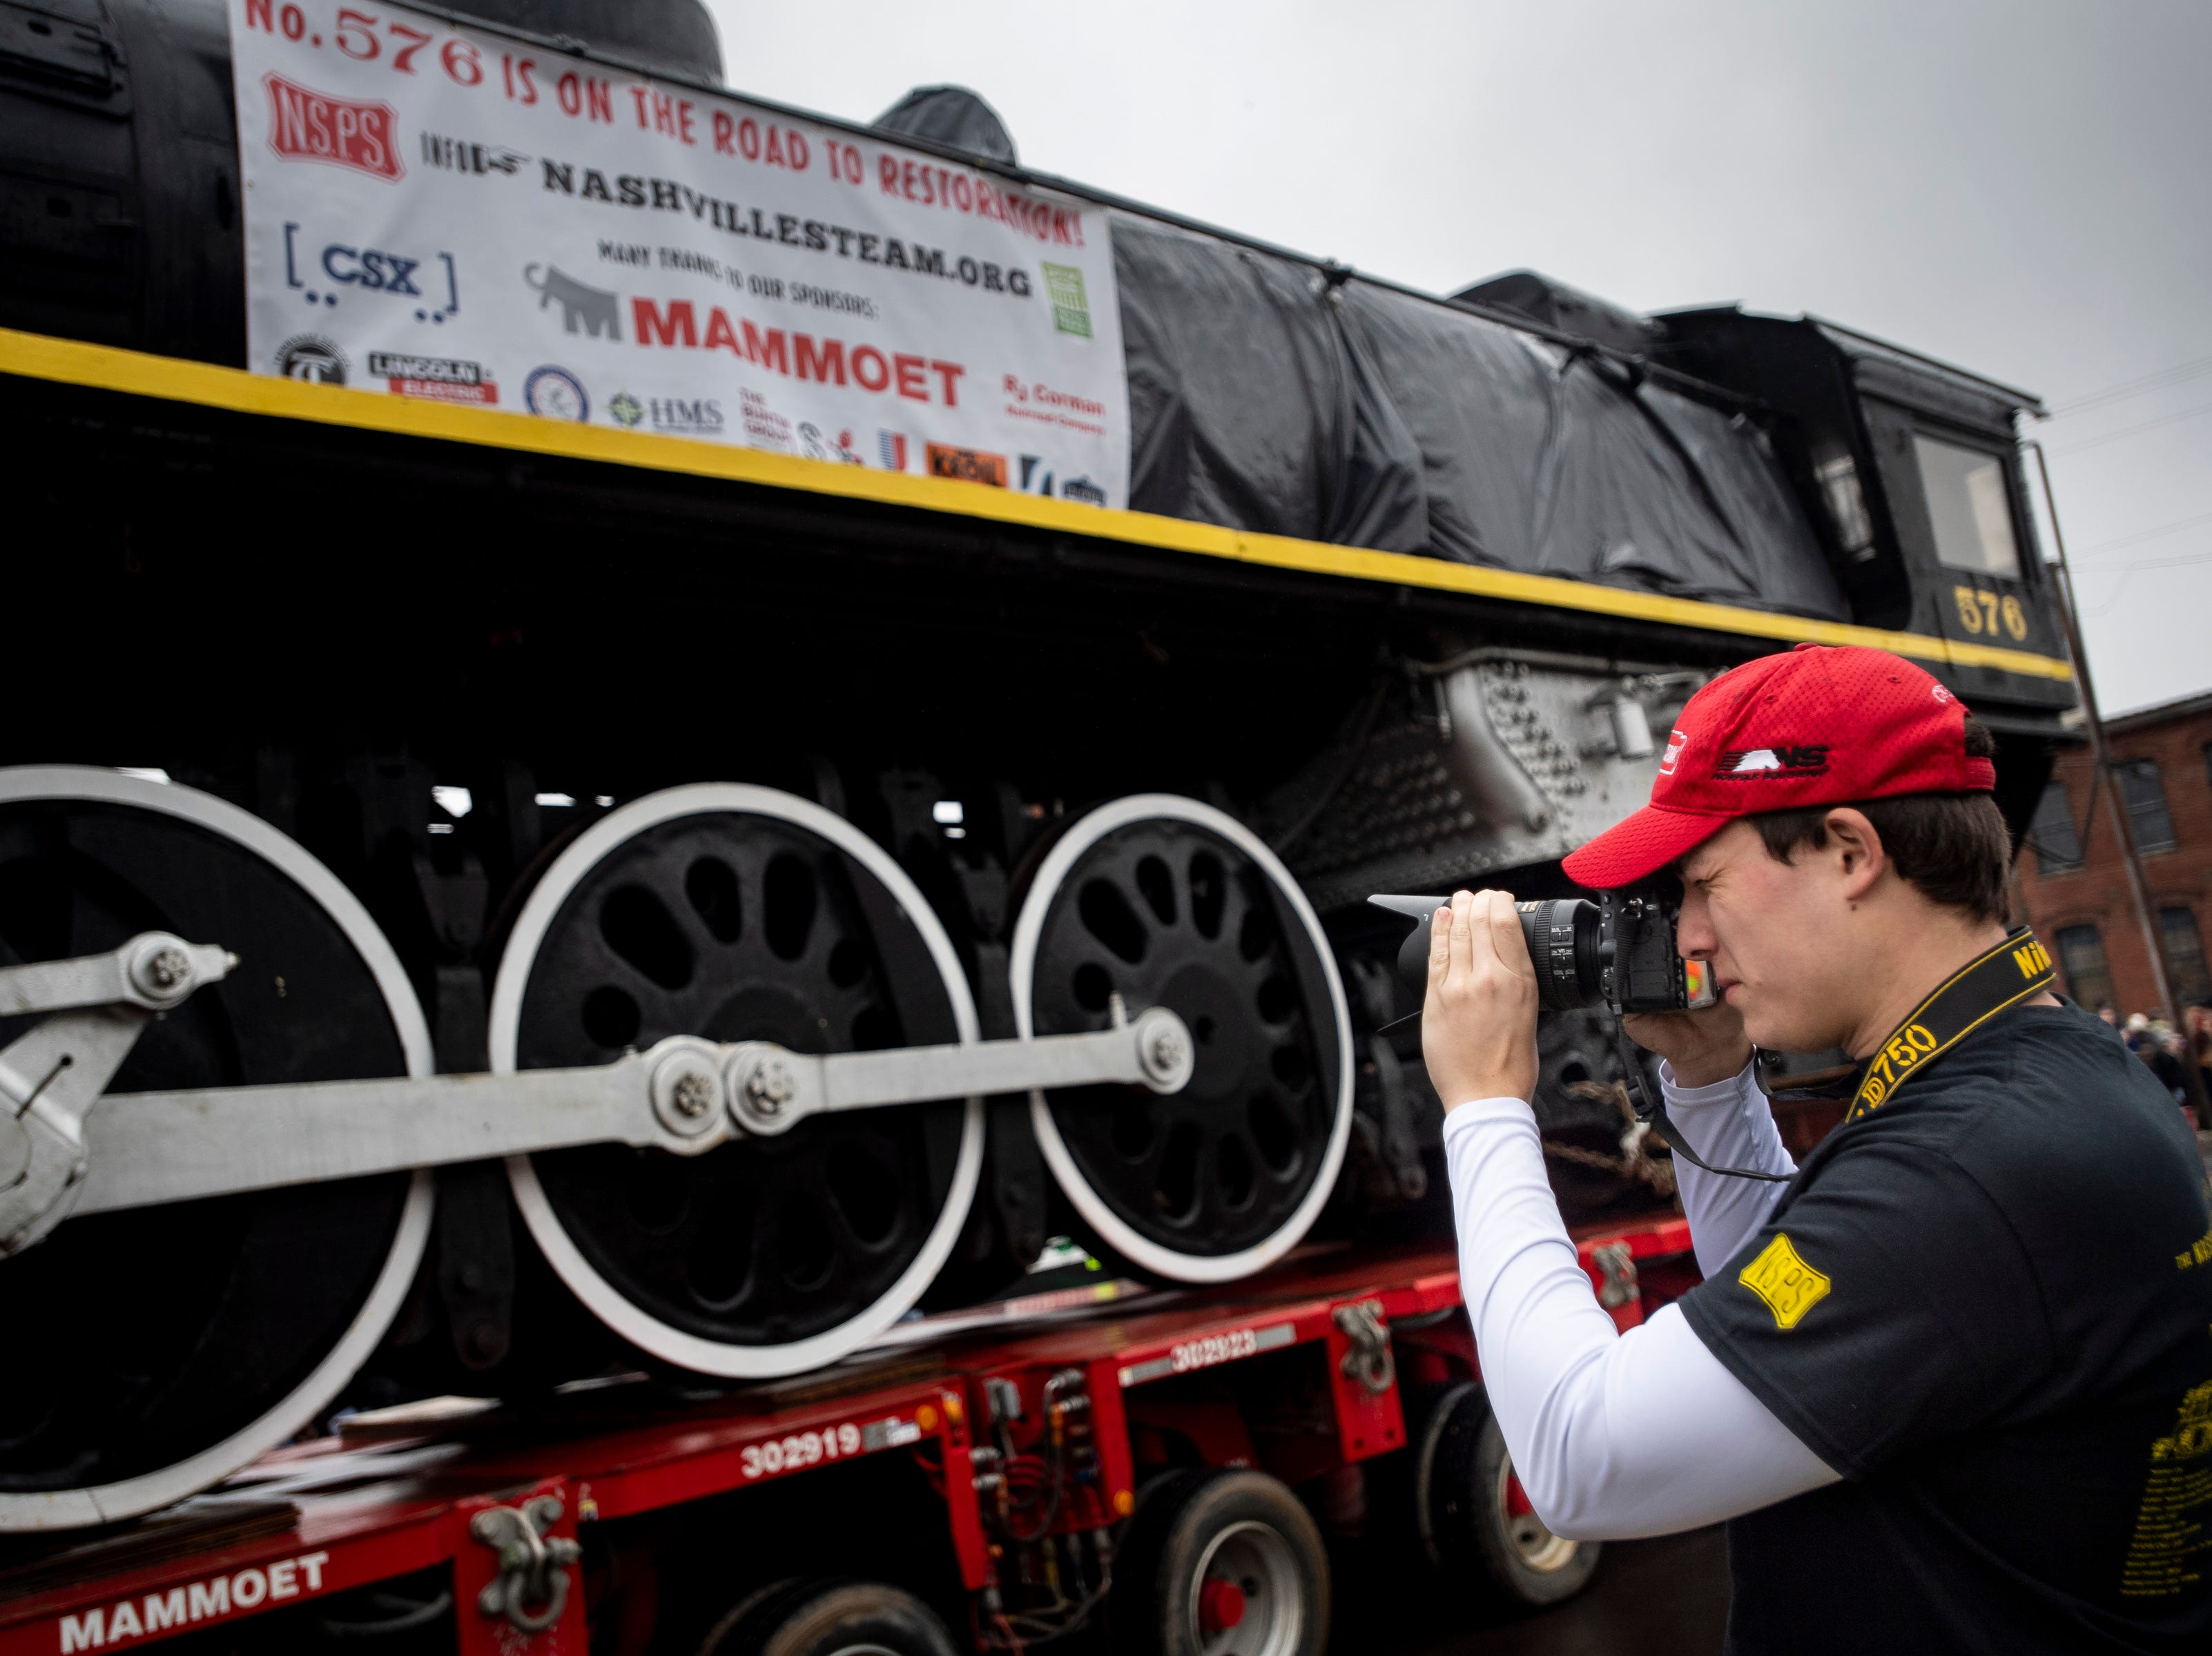 Joseph Randall, of Kennesaw, Ga., takes pictures as former Nashville, Chattanooga & St. Louis Railway steam locomotive No. 576 is moved down 12th Ave. North in Nashville, Tenn., Sunday, Jan. 13, 2019. The train, which will be restored to working condition over approximately four years, has been on display in Centennial Park since 1953.